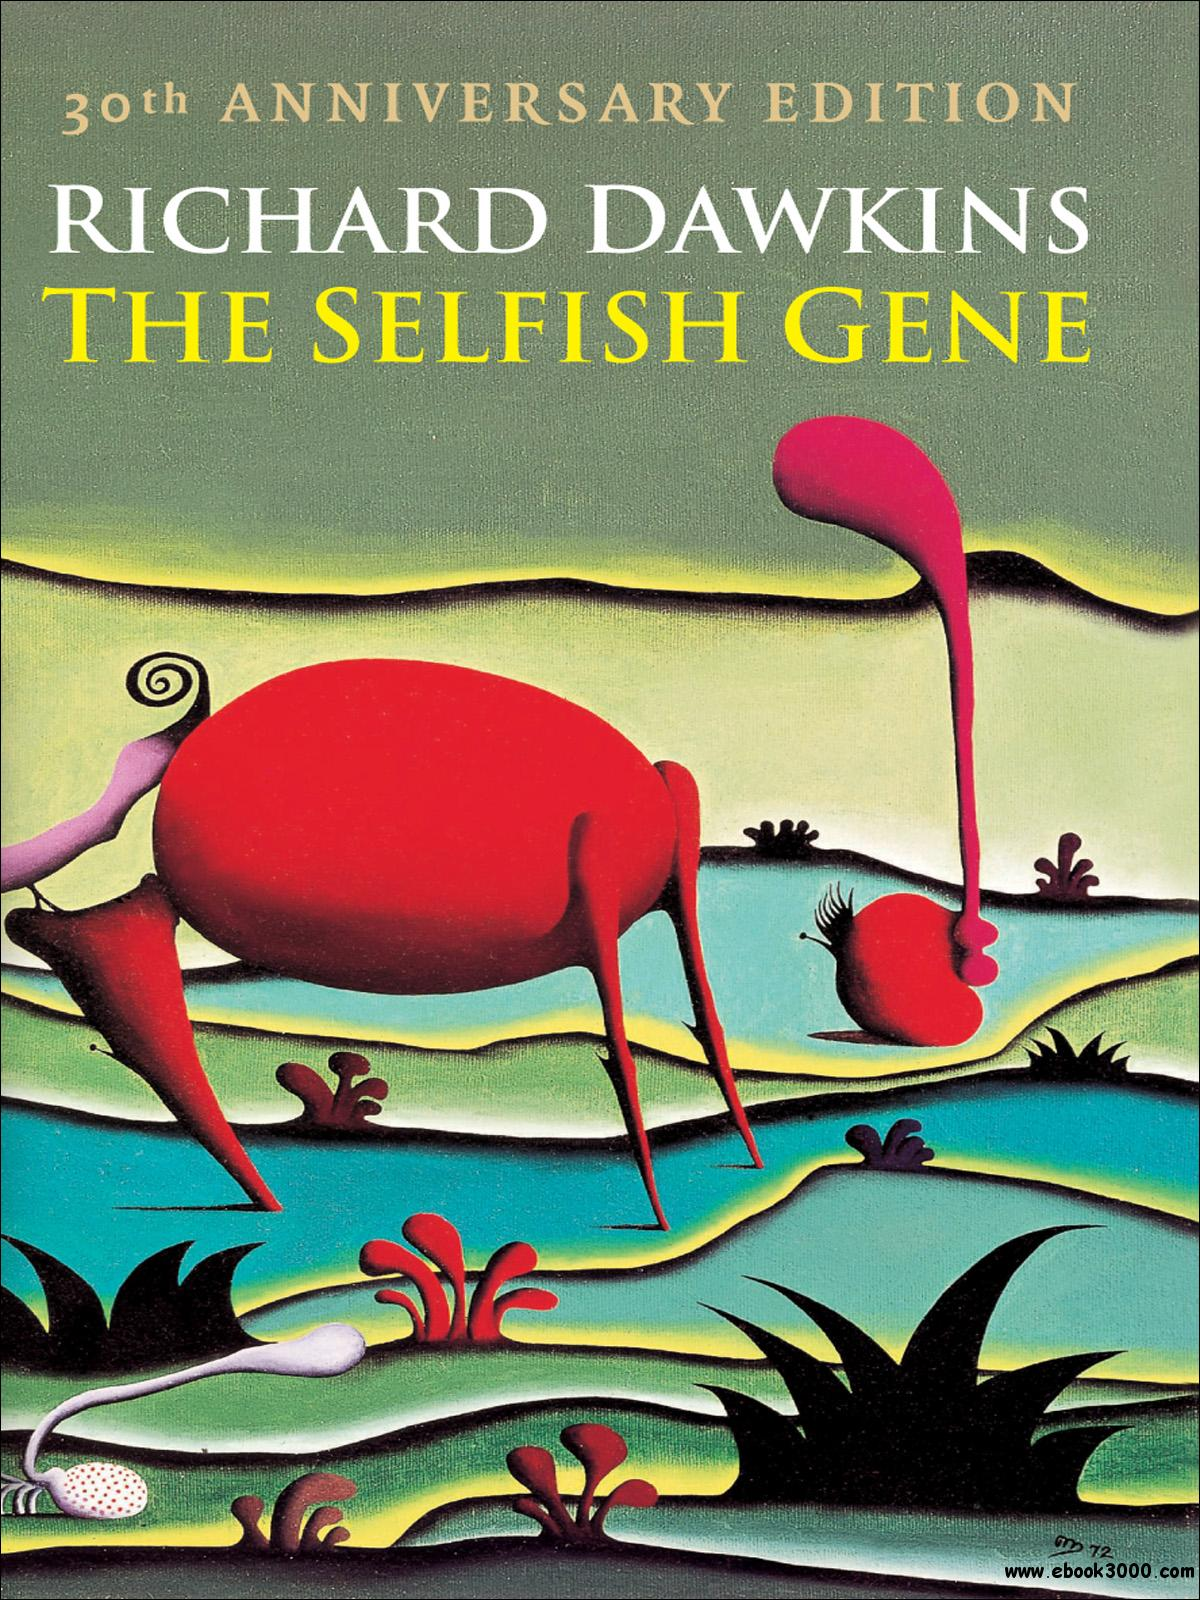 the theory of evolution in the selfish gene by richard dawkins The selfish gene is a metaphor, a figure of speech but it's still as good today as it was the day dawkins wrote his book he published a 30-year anniversary edition a couple of years ago and made very few changes in his original words, because they needed no change after all this time.